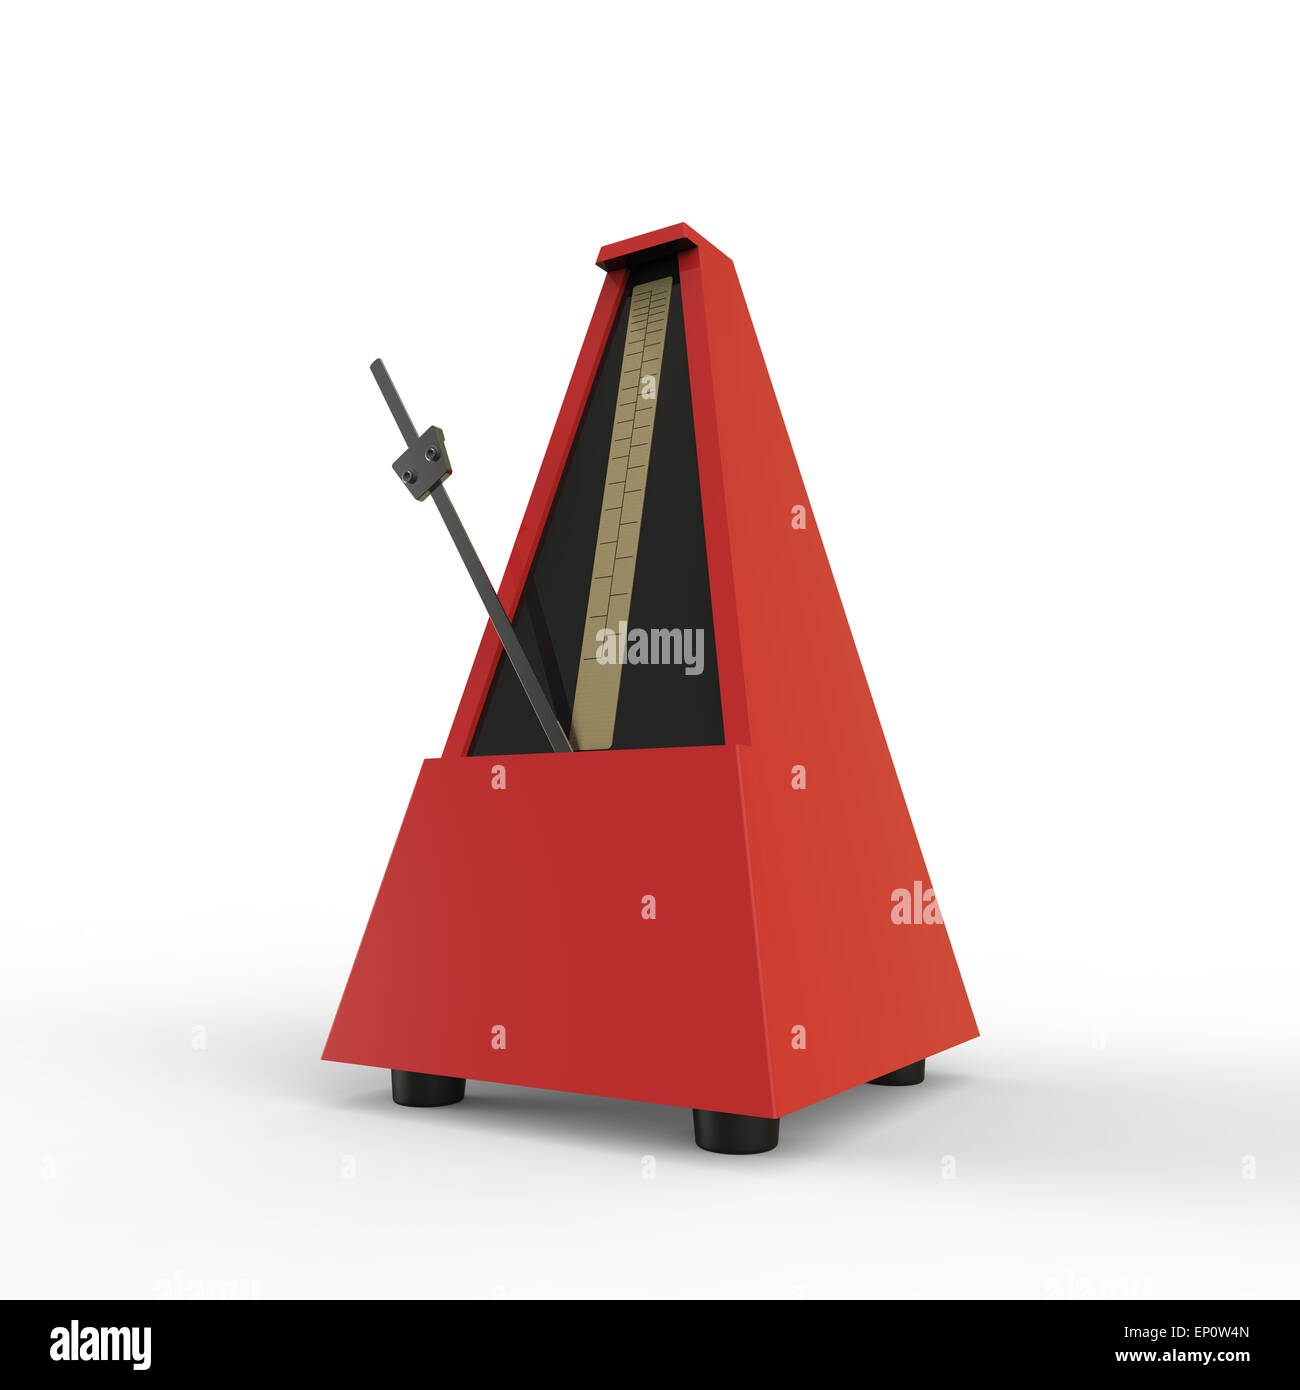 red pyramid shaped wooden metronome on a white background used for music practice to keep the rhythm - Stock Image